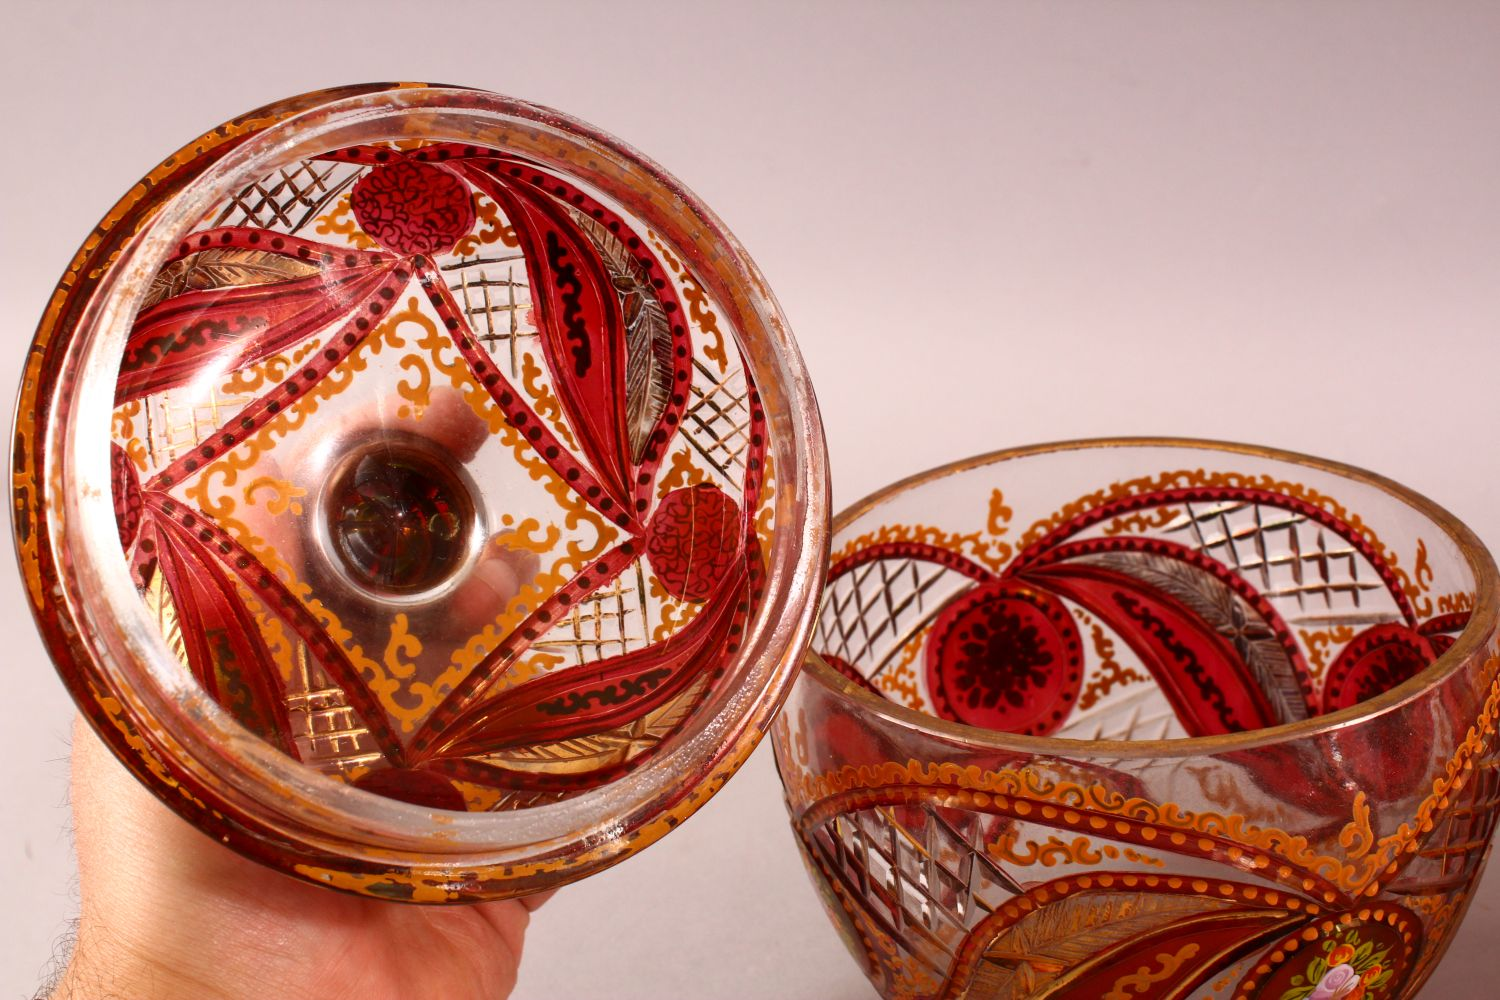 A PAIR OF BOHEMIAN RED ENAMELLED GLASS JARS, each with enamel and gilt work, 20cm each - Image 3 of 4